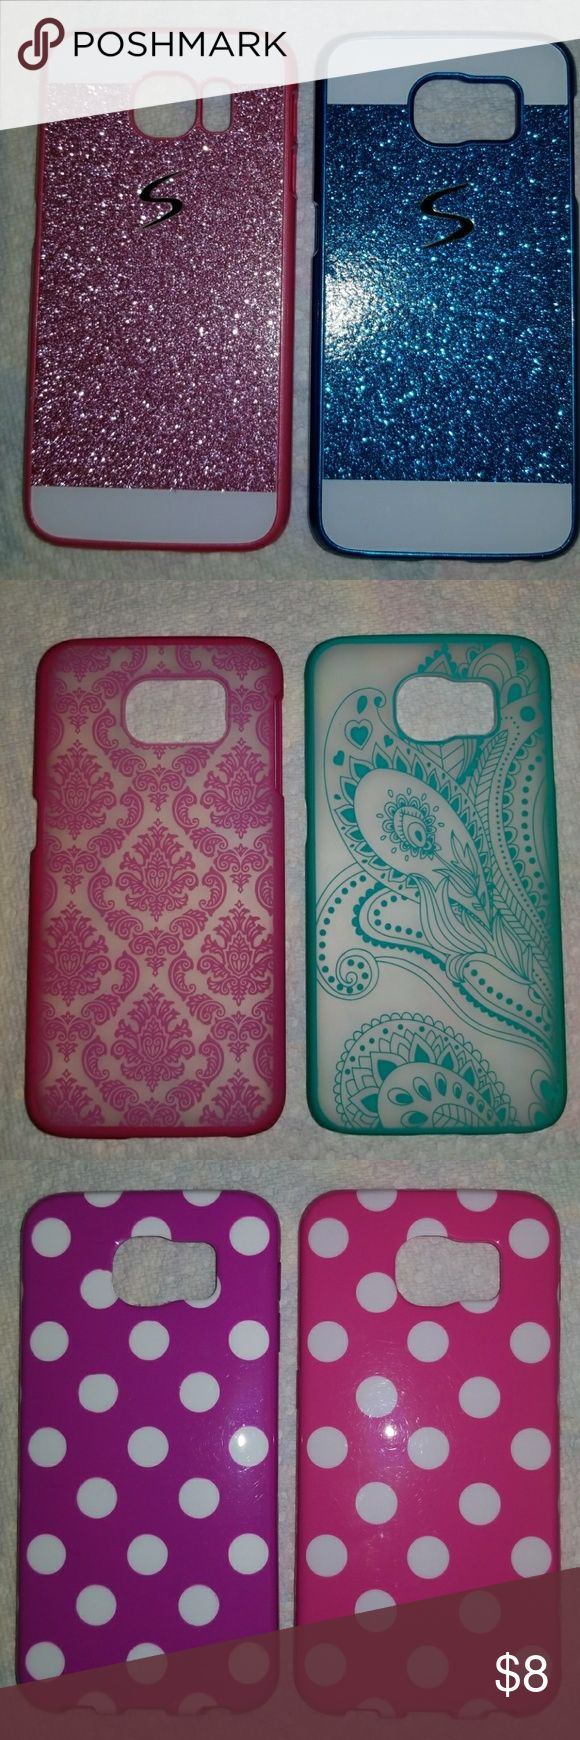 Lot of Samsung Galaxy S6 phone cases Lot of Samsung Galaxy S6 phone cases (12) A variety to choose from. Some never used, others lightly used (I like to change phones cases often, therefore they were rarely used) $8 EACH or the WHOLE LOT for $40 ~  2-3     cases $7 ea 4-6     cases $5 ea 7-10   cases $4 ea WHOLE LOT $40 which is $3.33 ea (If only interested in a few covers, let me know which ones you would like) Accessories Phone Cases